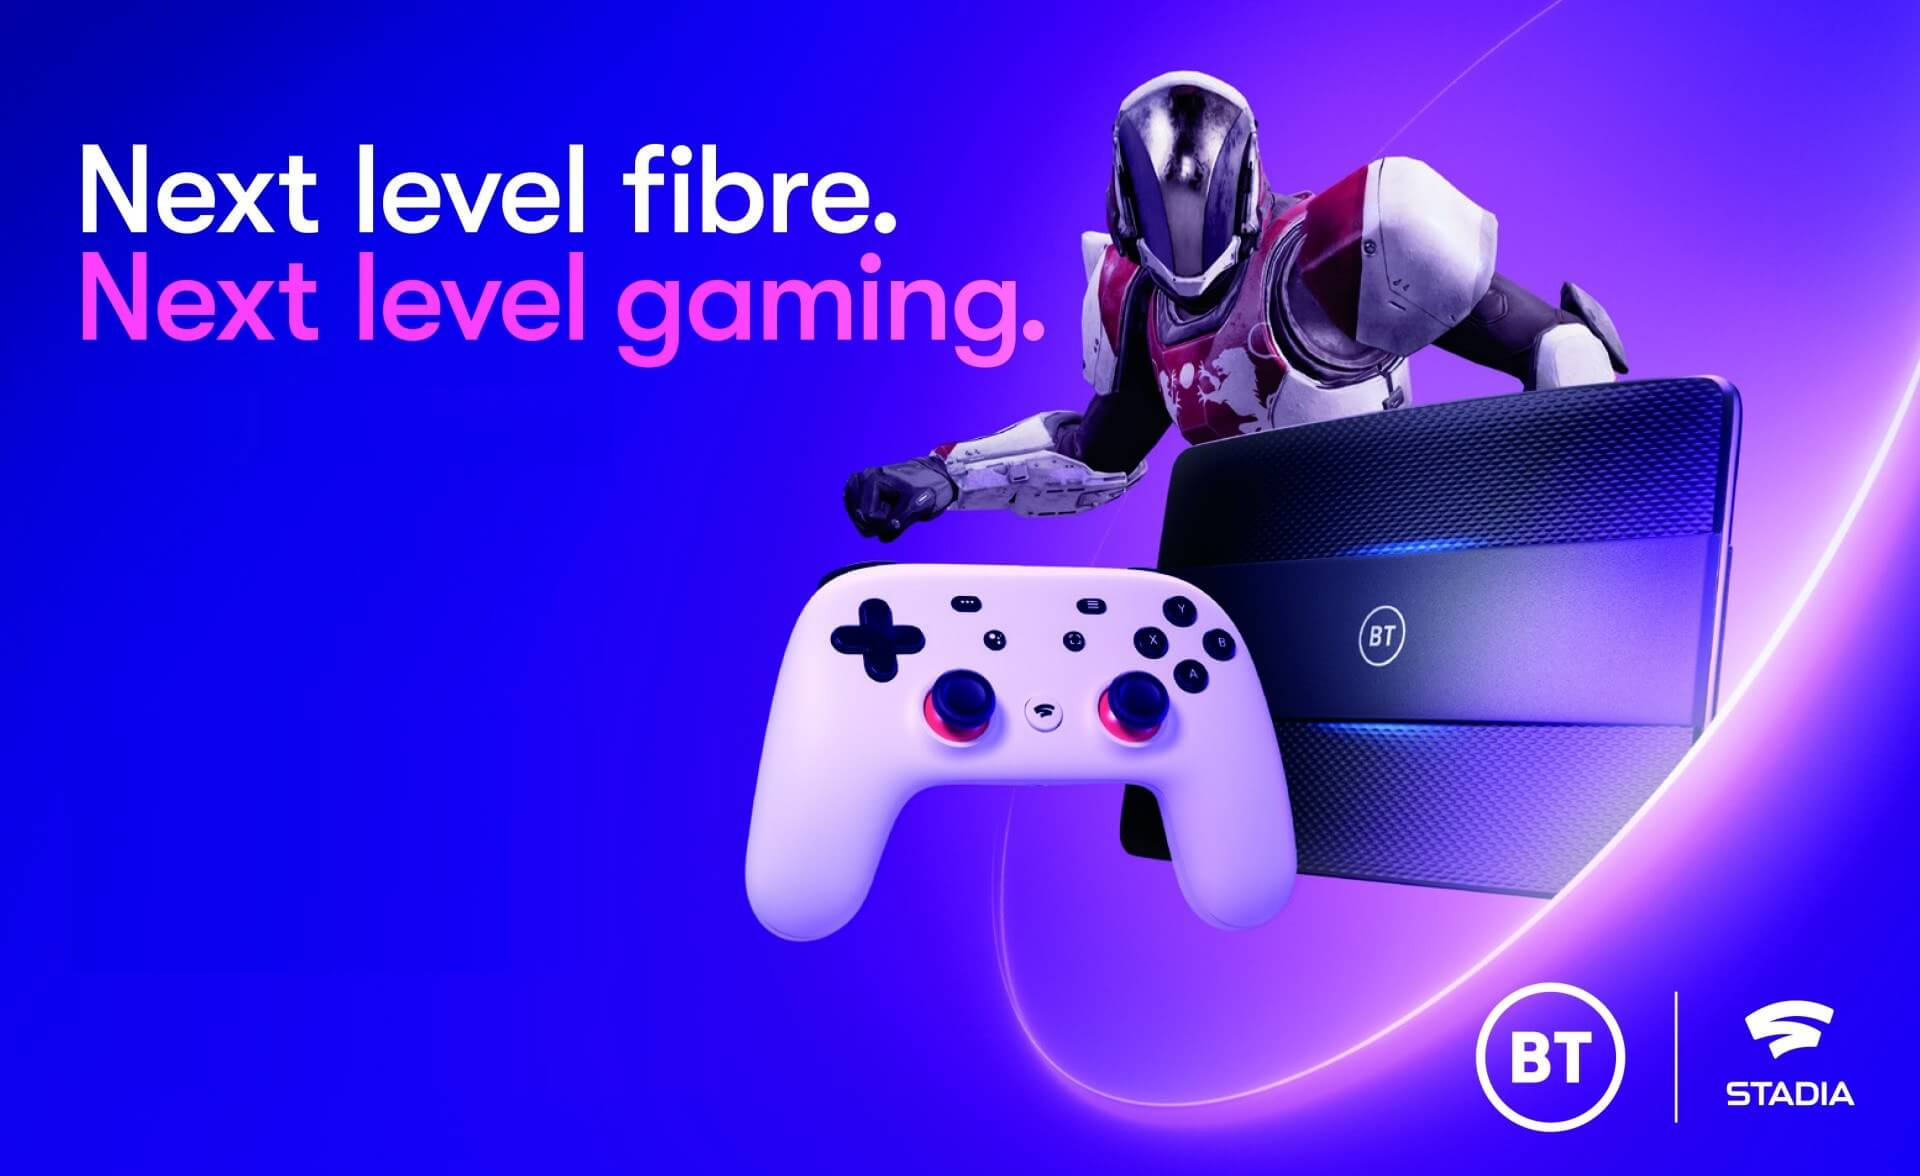 Google partners with BT to offer Stadia bundled with high-speed internet service in UK